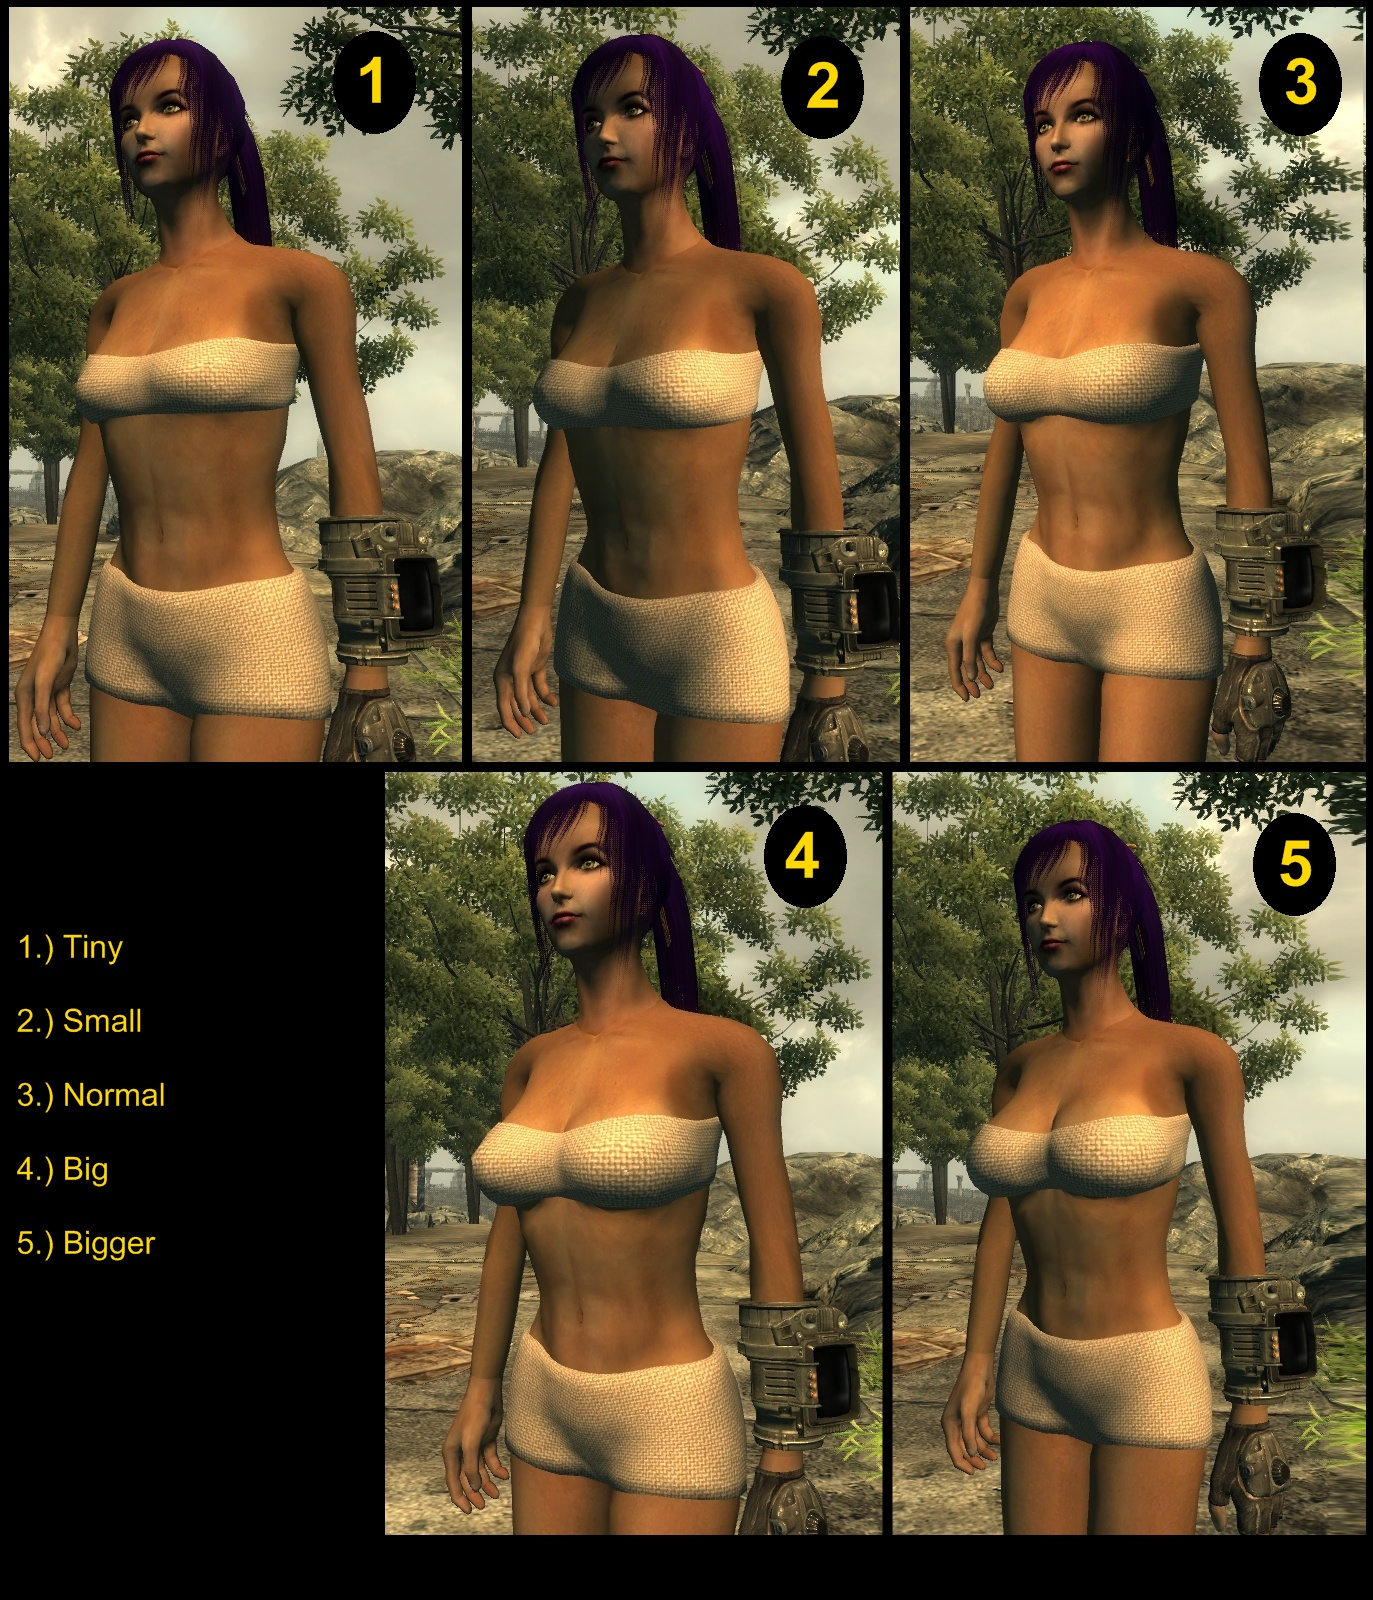 Fallout nude body replacer pornos scenes